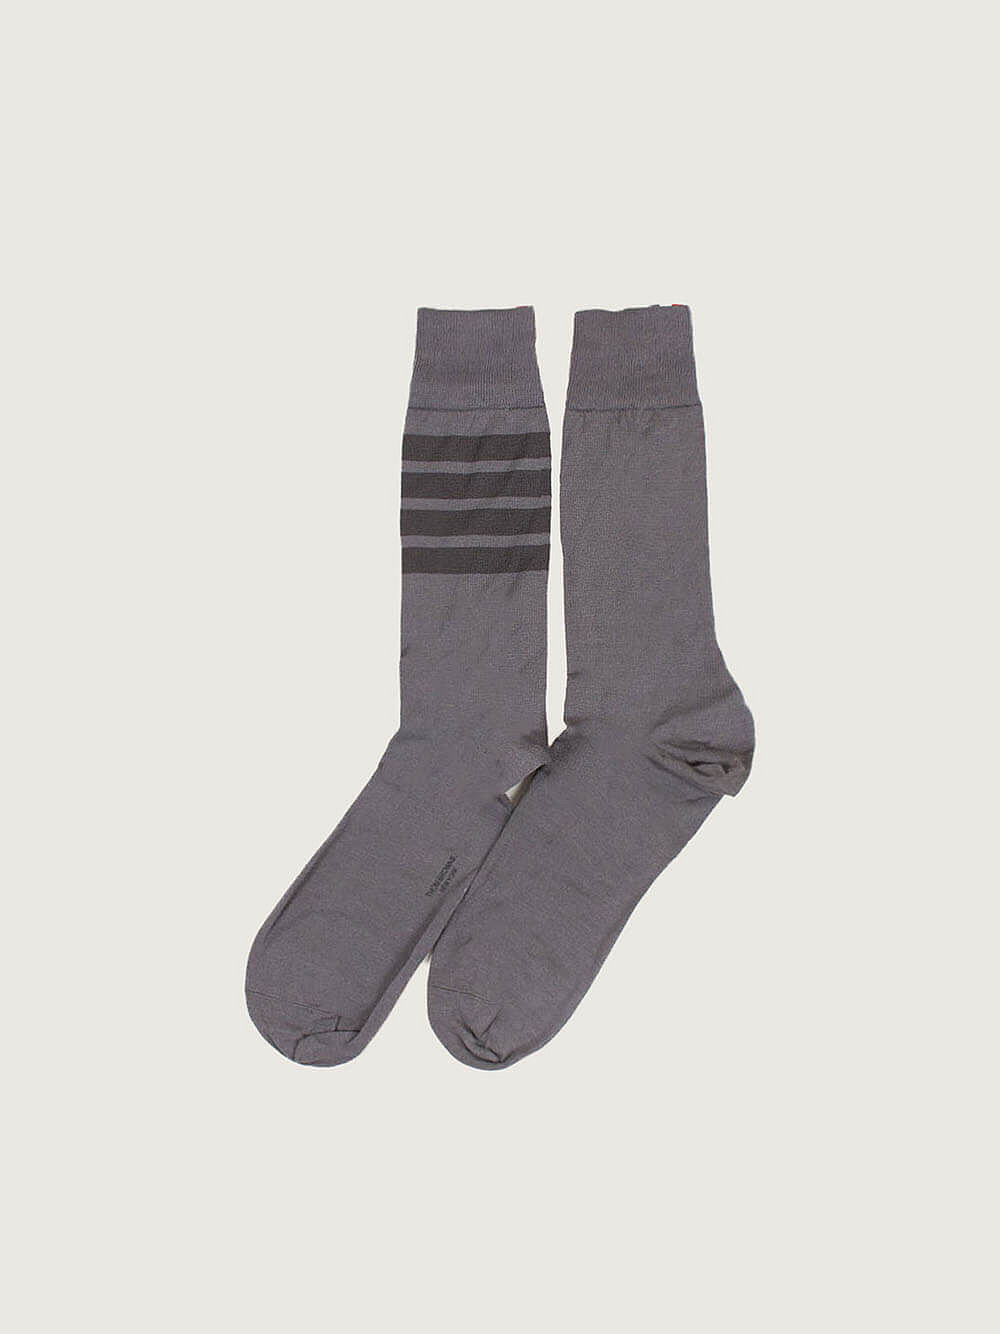 Mid Calf Socks 4 bar